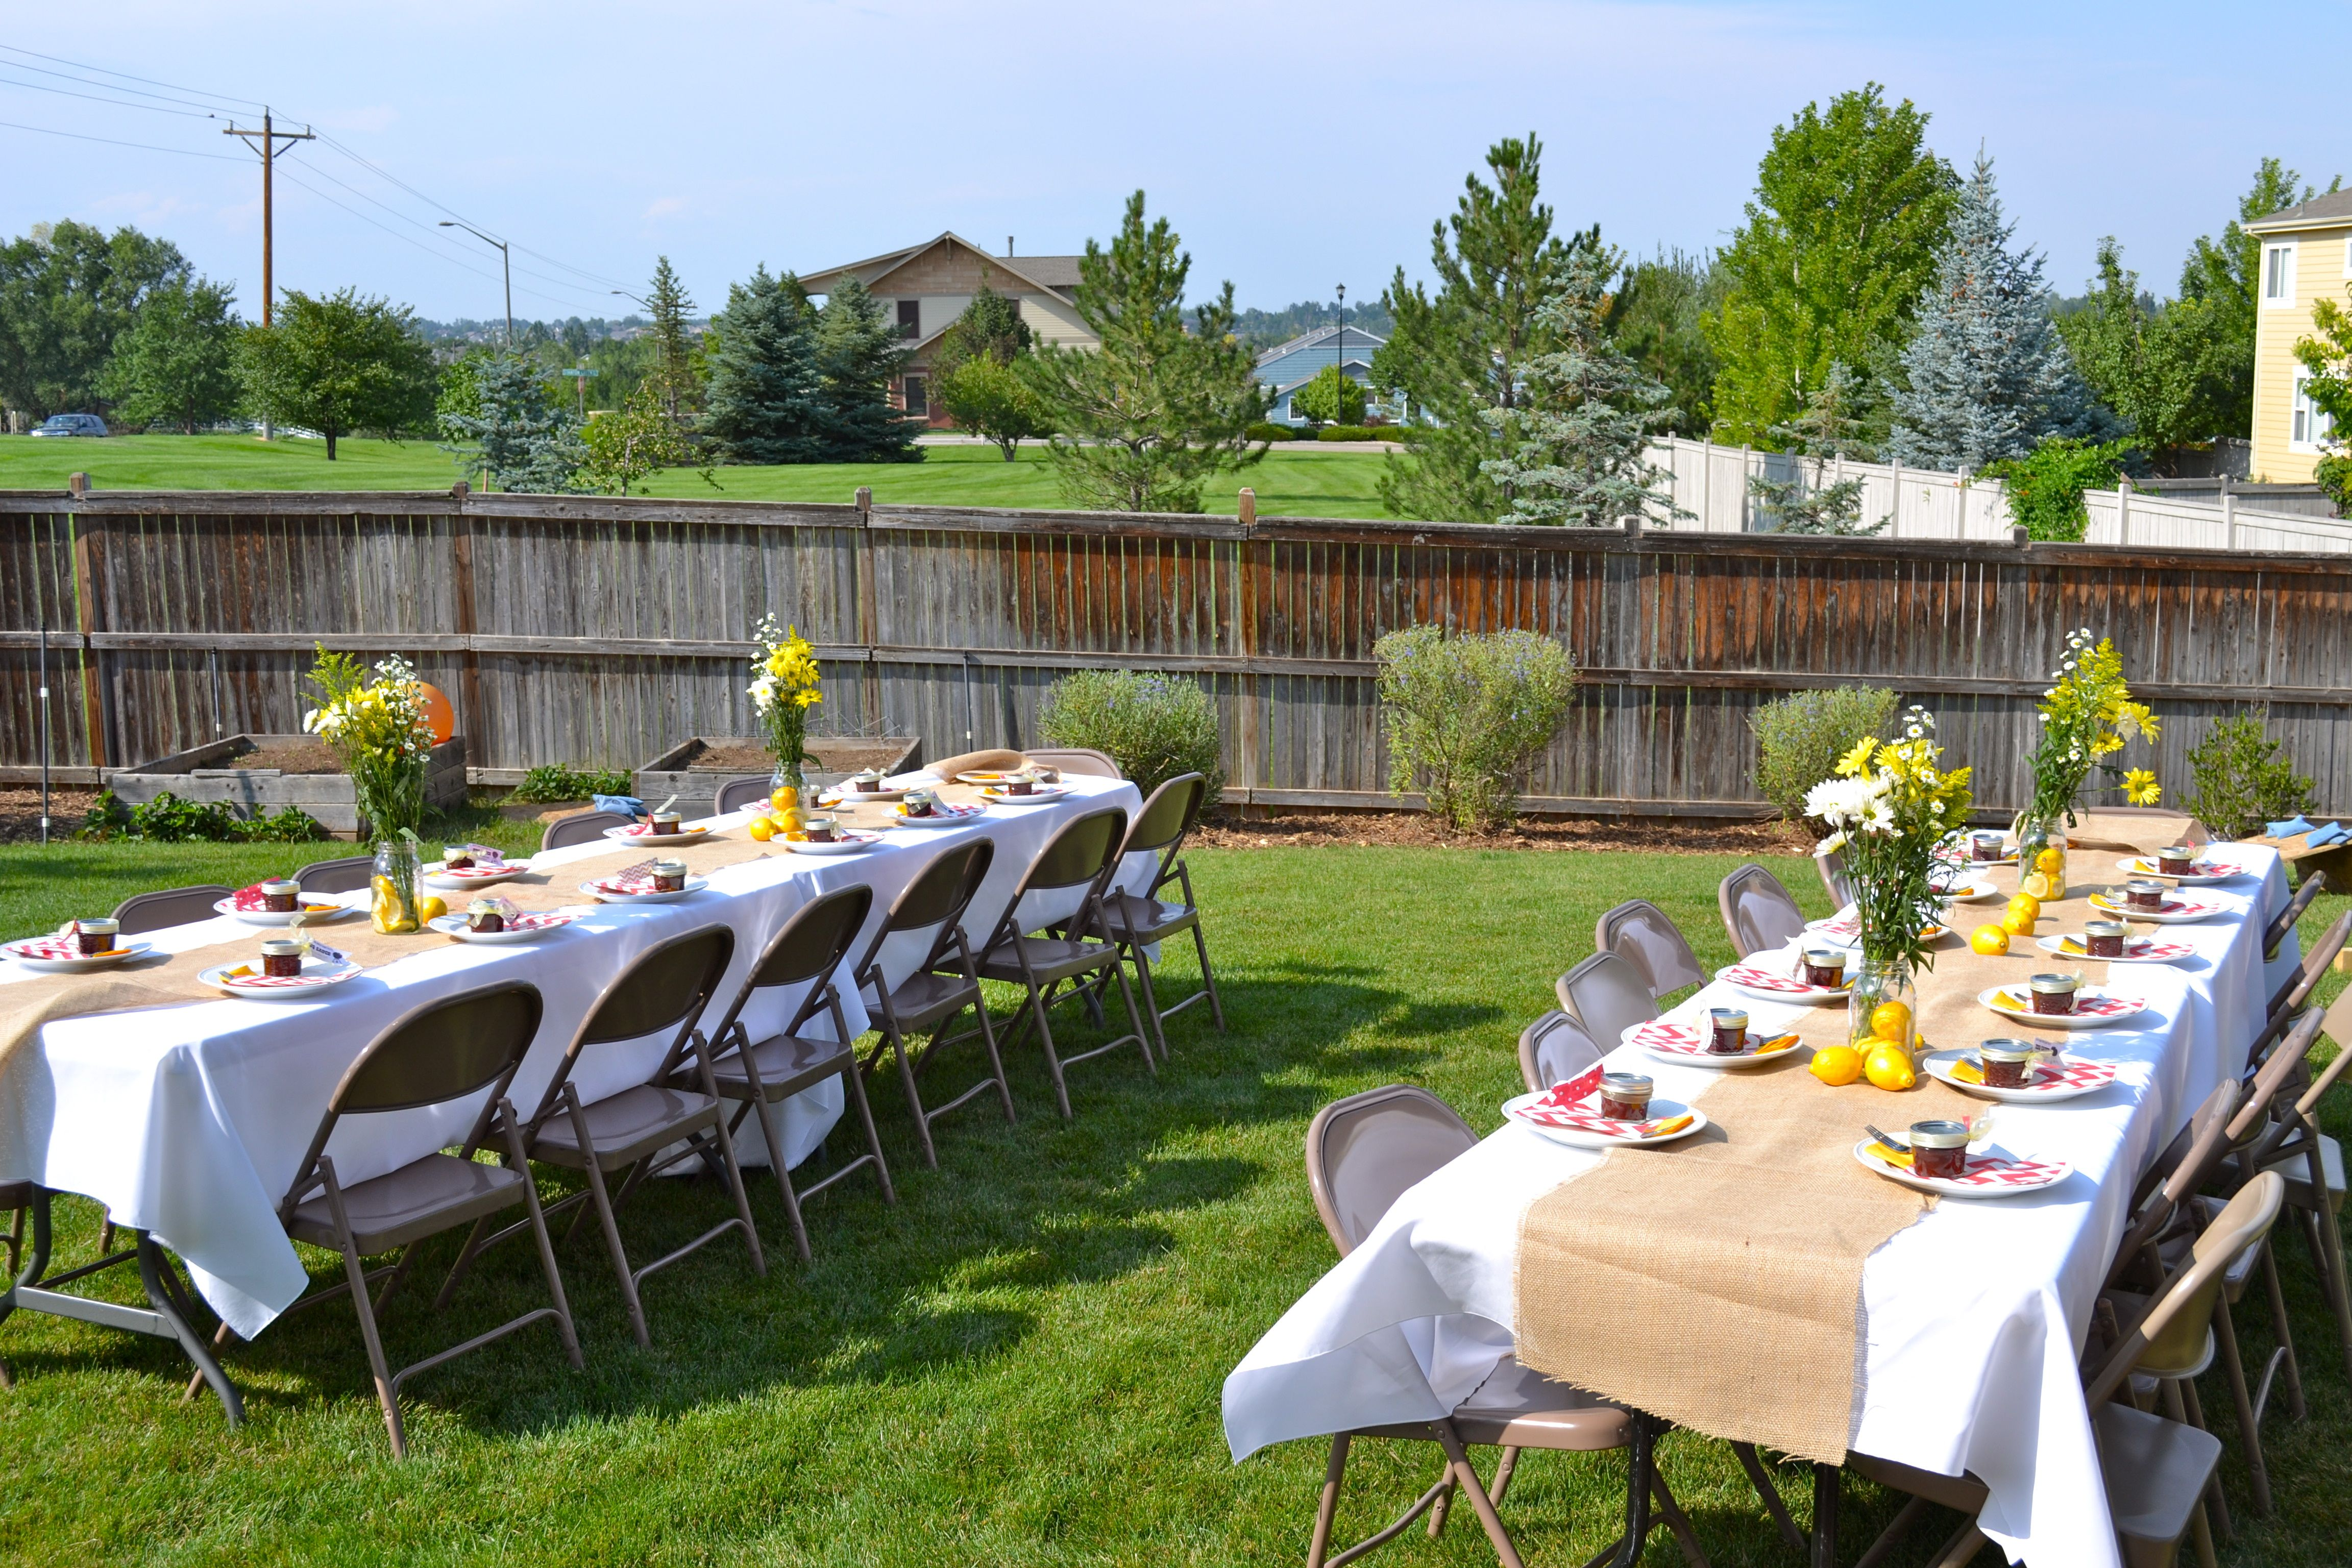 setting up a back yard baby shower - Google Search ...